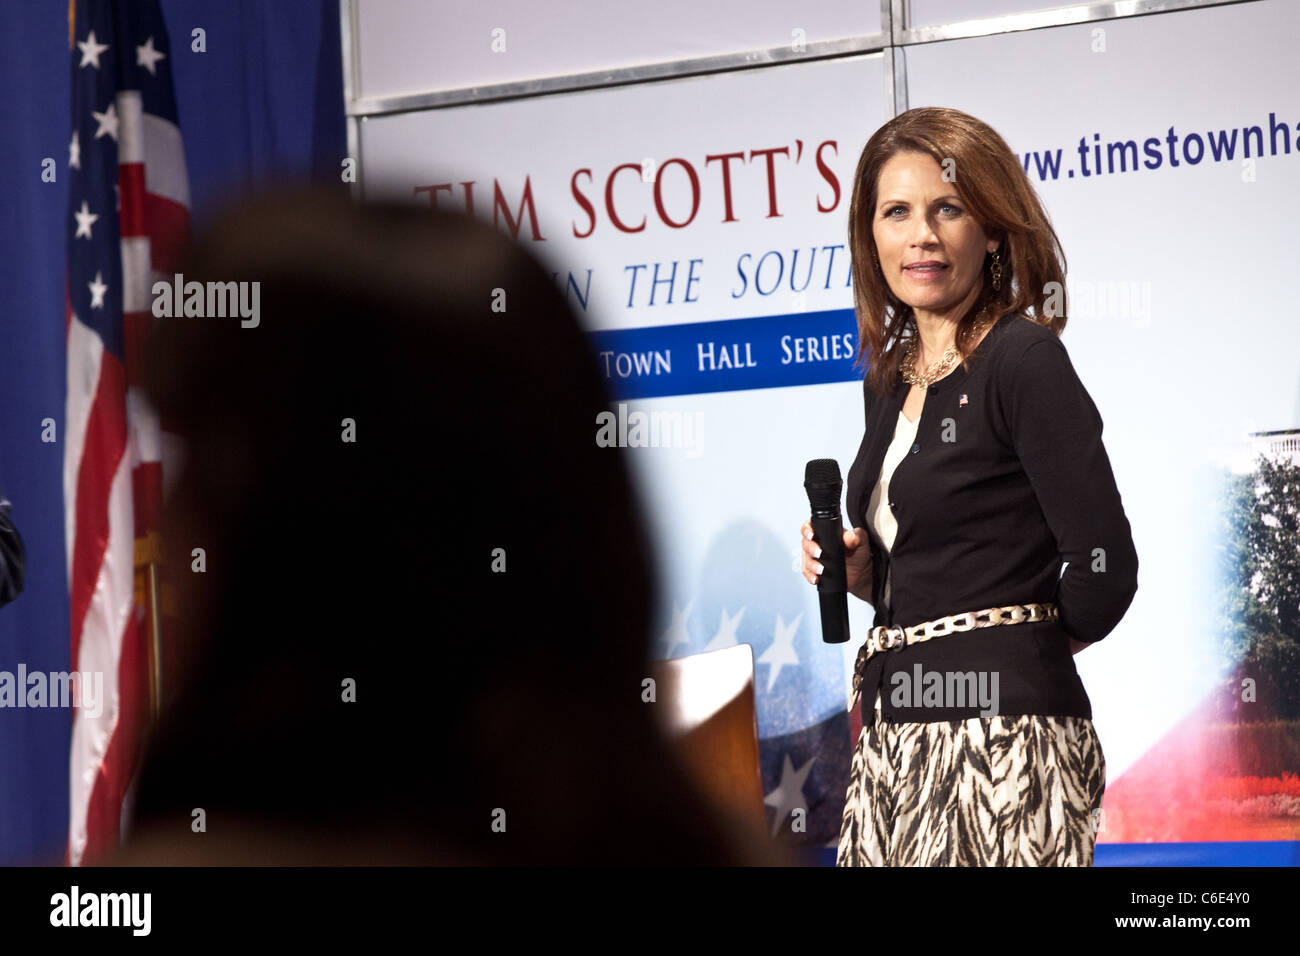 Conservative Republican Presidential candidate Rep. Michelle Bachmann answers a question from the audience during - Stock Image